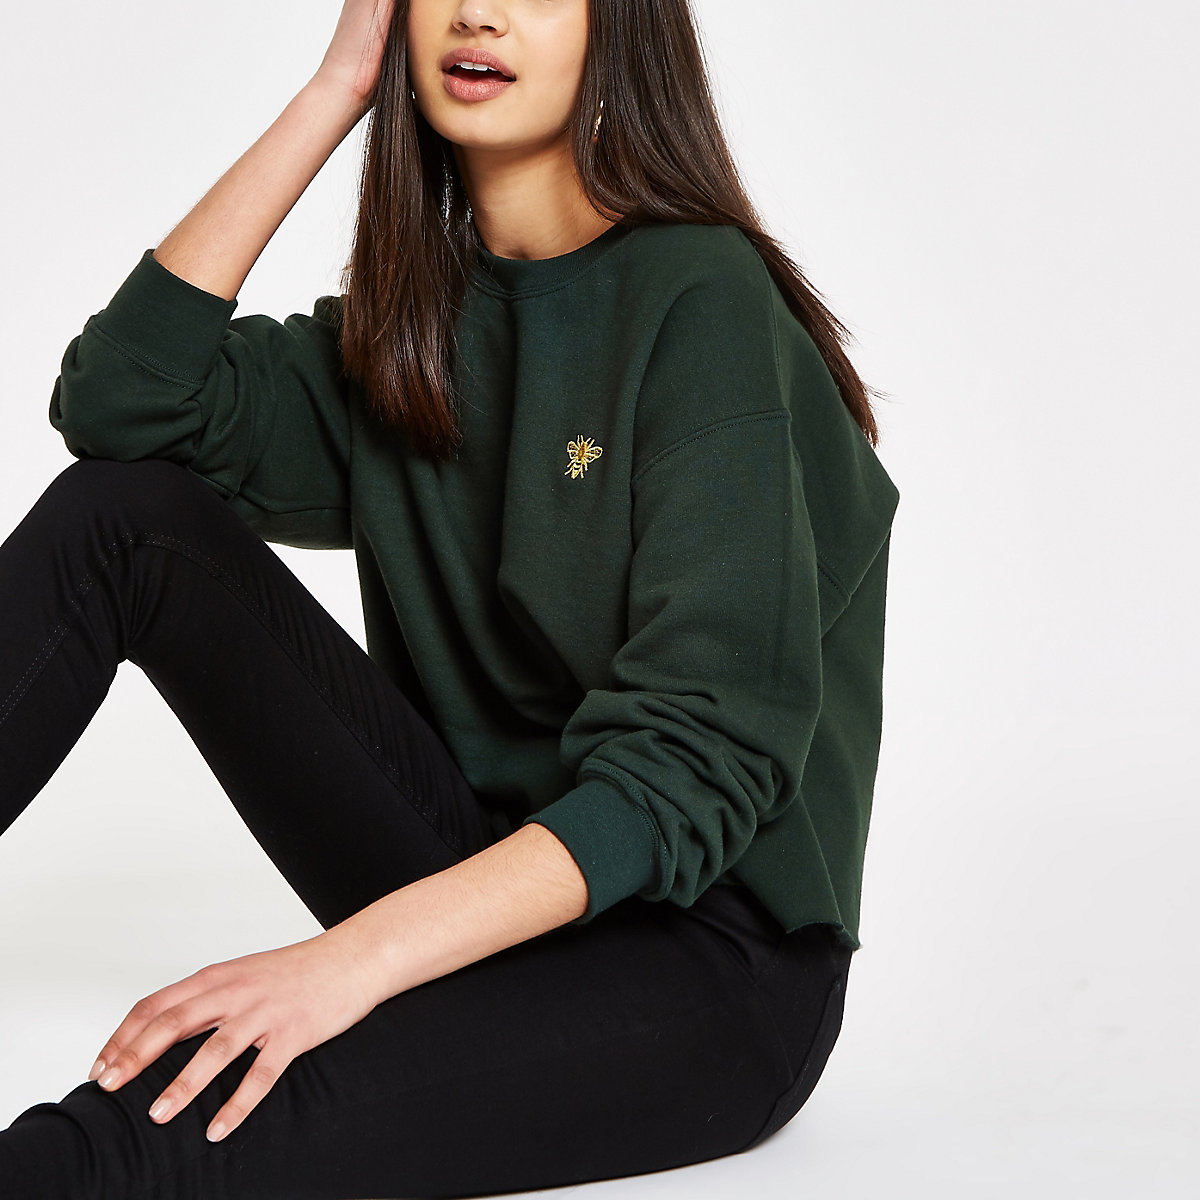 Khaki wasp embroidered sweatshirt